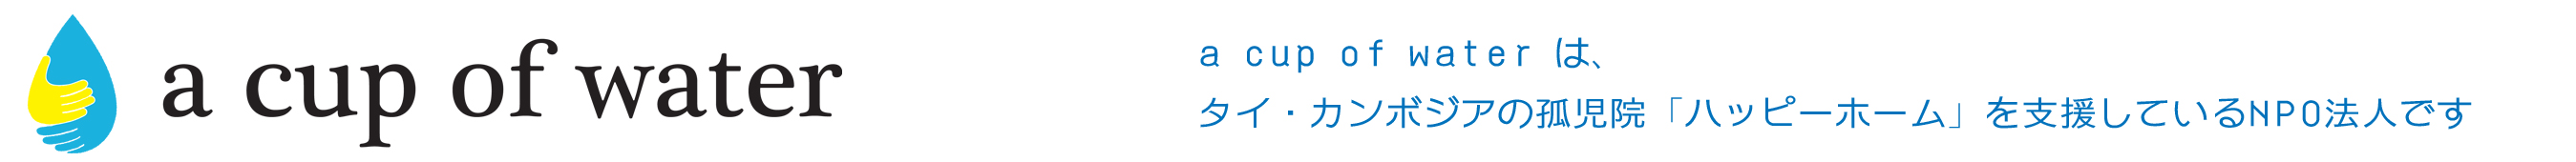 NPO法人 a cup of water